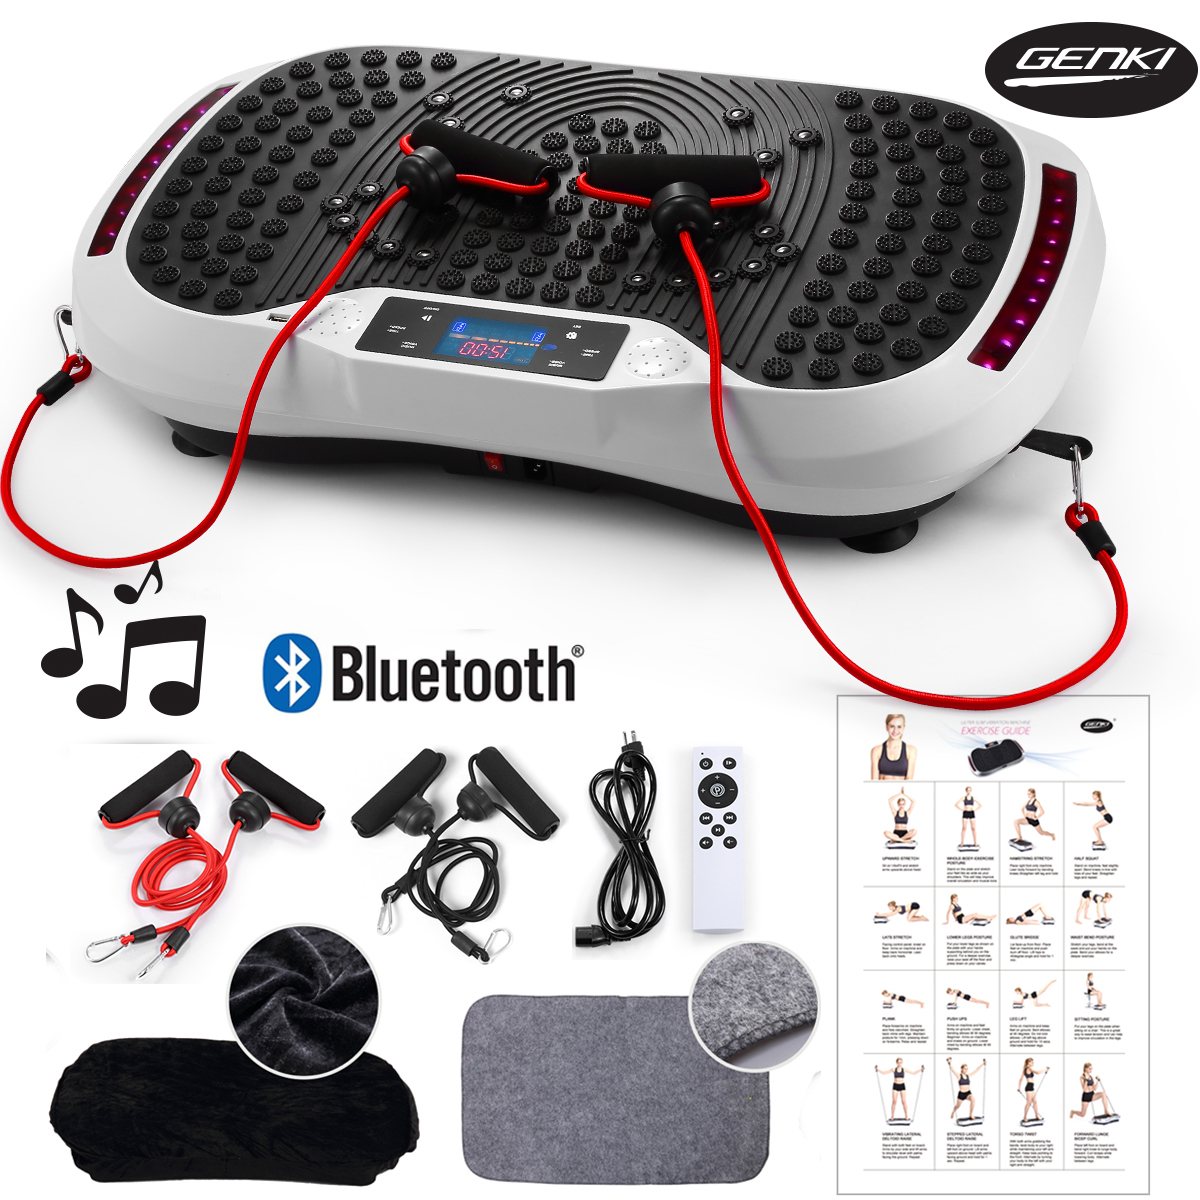 Genki MP3 Player Vibration Platform Fitness Machine, Whole Body Exercise Workout Plate, Massager Shaper, Bluetooth/USB Music & LCD w/ Remote, 2 Balance Straps, Mat, Cover & Poster, White